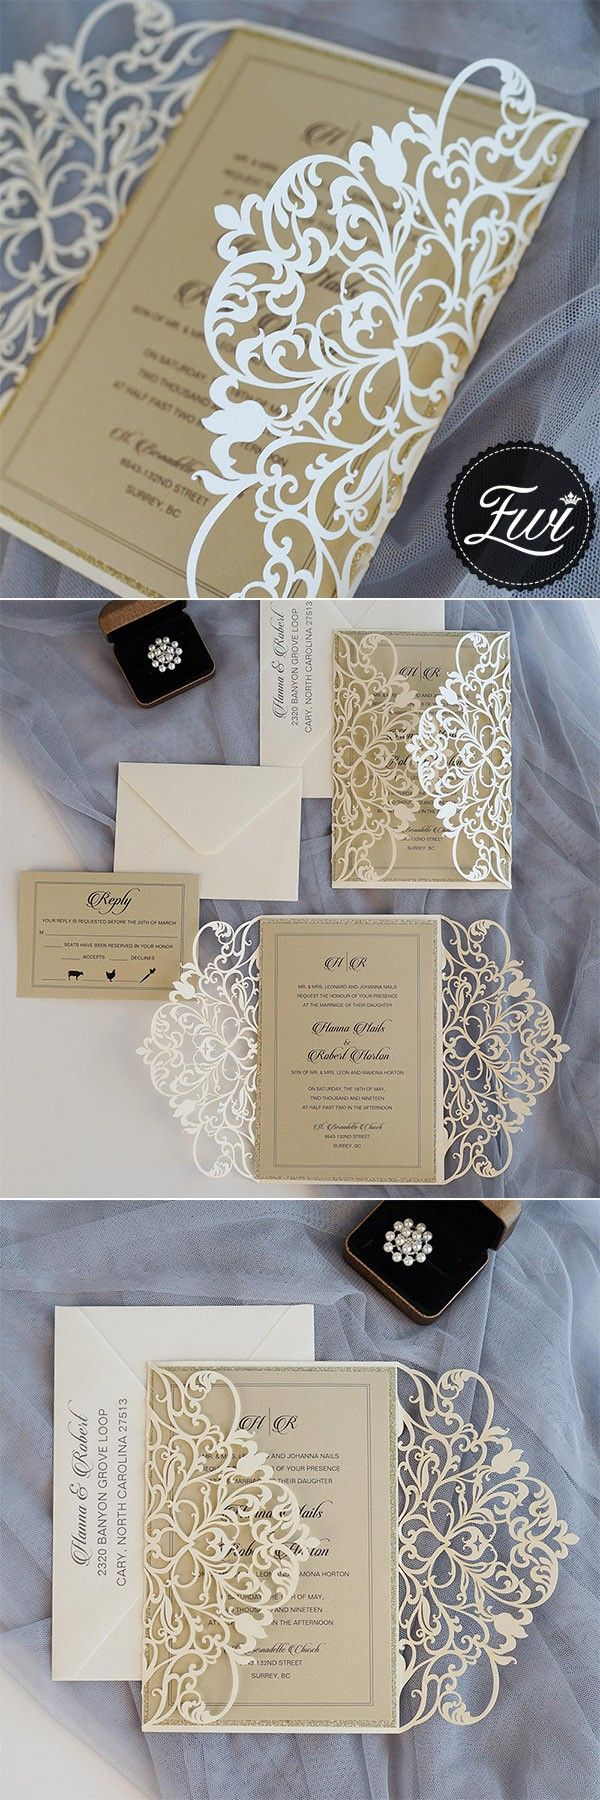 Best 200+ Wedding Invitations images on Pinterest